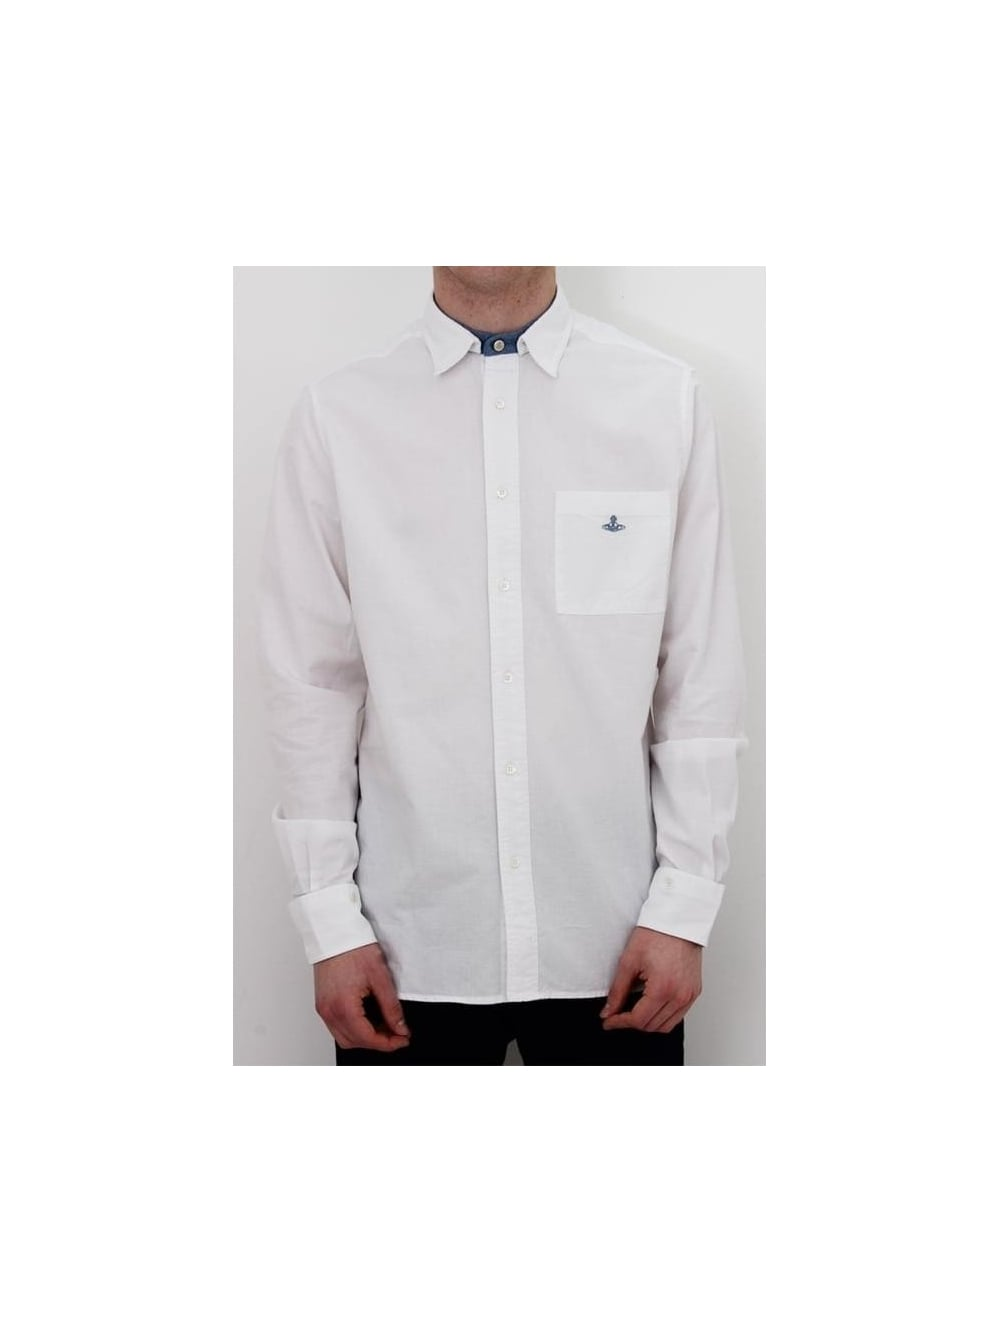 a01b8f3941eb5 Mens Vivienne Westwood Anglomania Detachable Collar Shirt - White ...